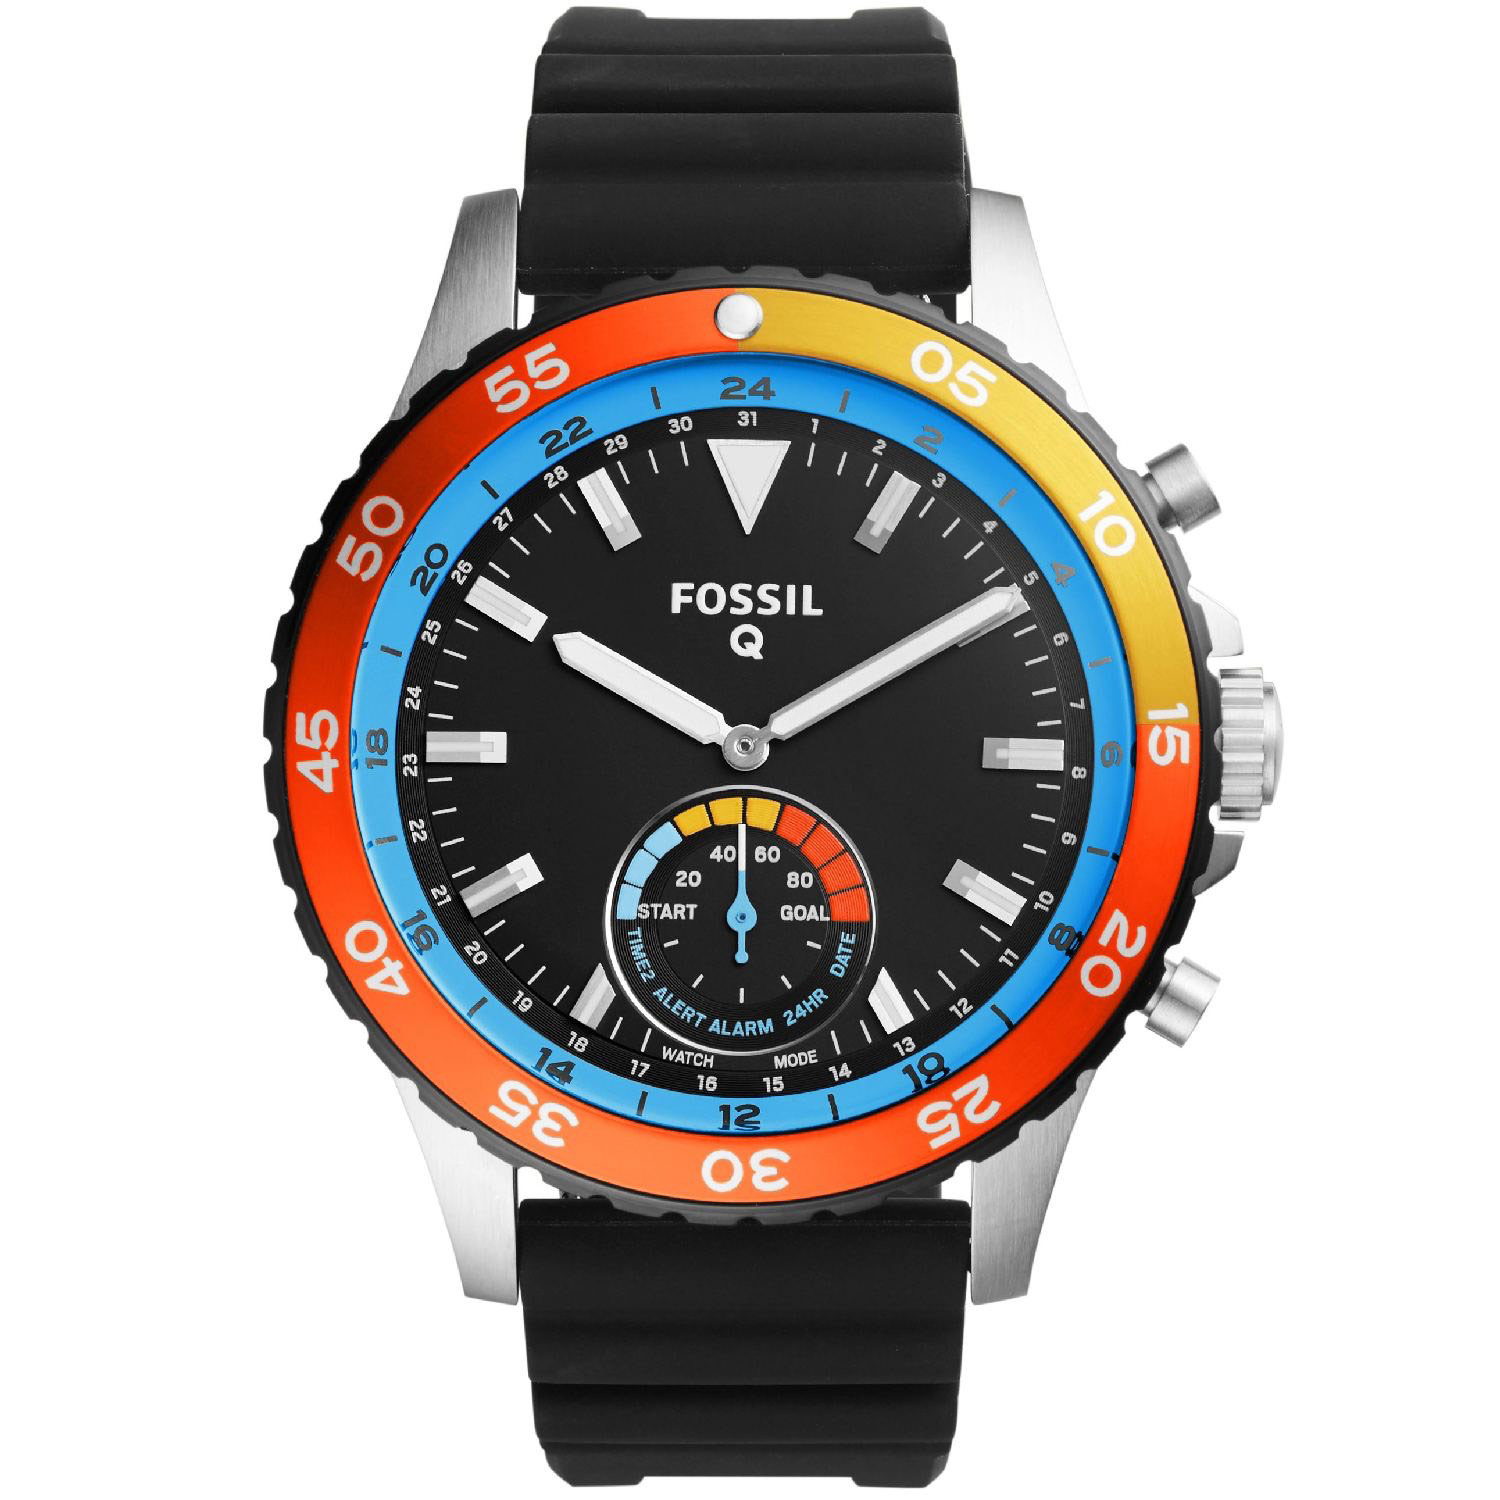 Fossil Q Crewmaster Hybrid Watch FTW1124